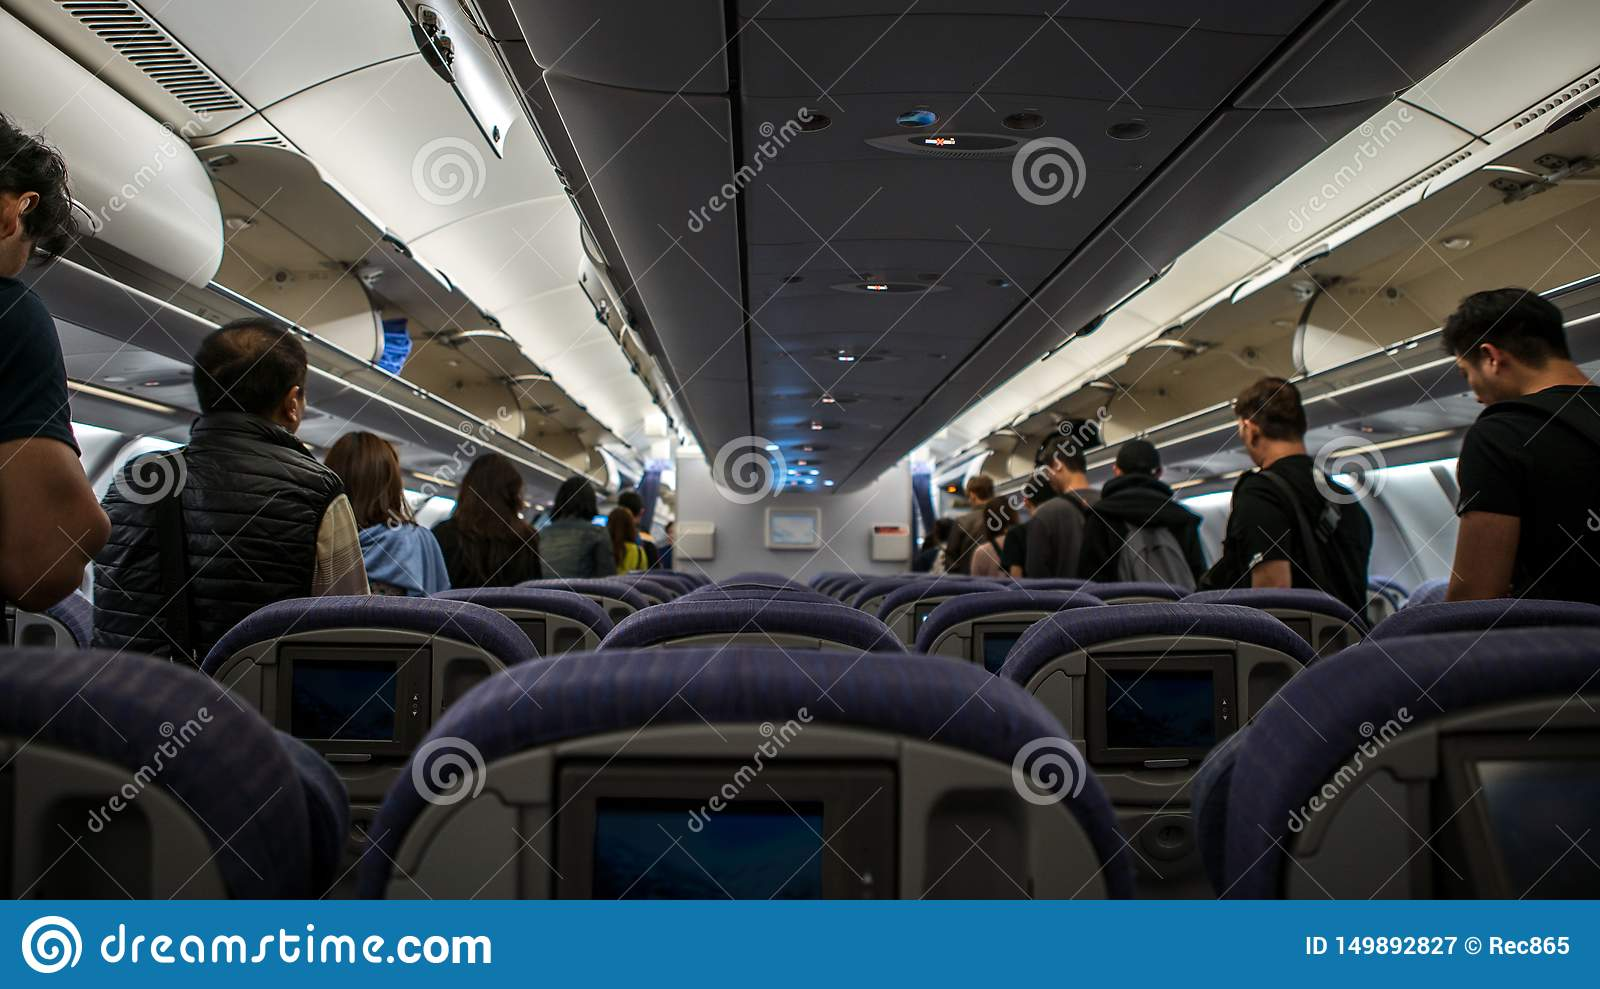 Interior airplane, passengers in aisle are walking to get off airplane